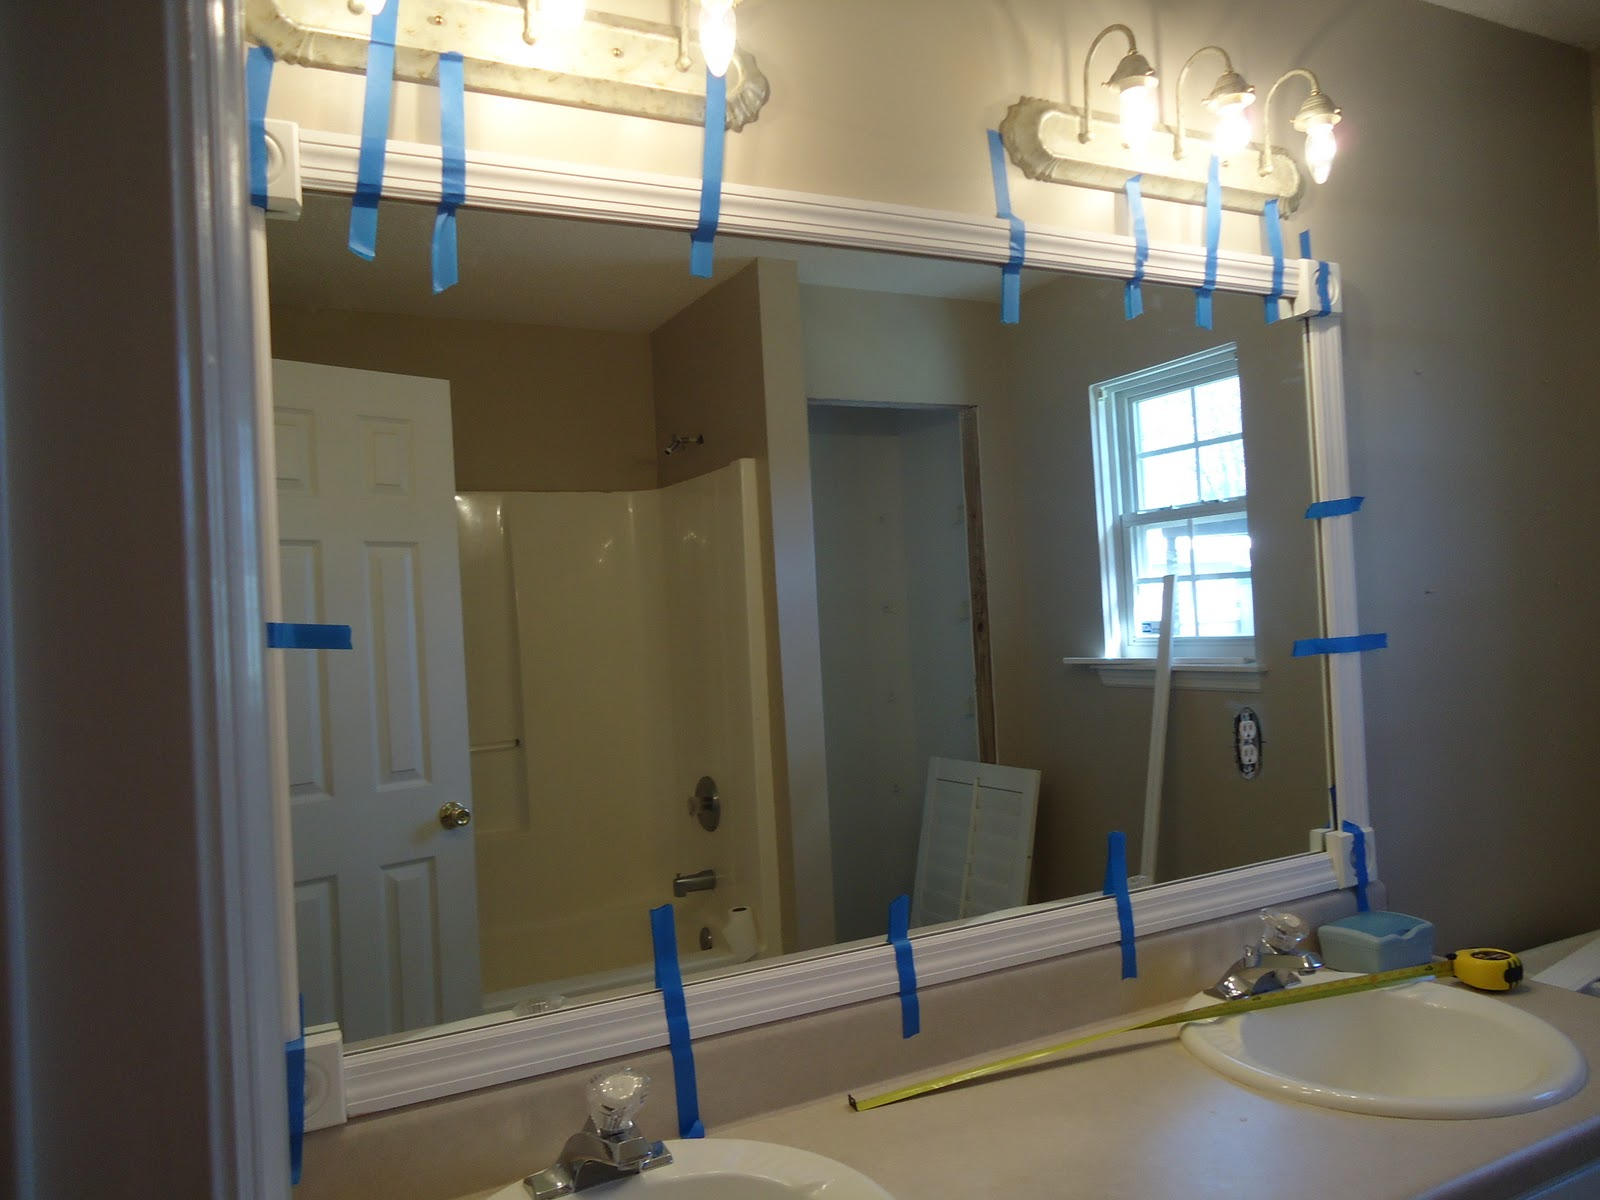 KASBN Master Bath Part 5 Framed Mirror